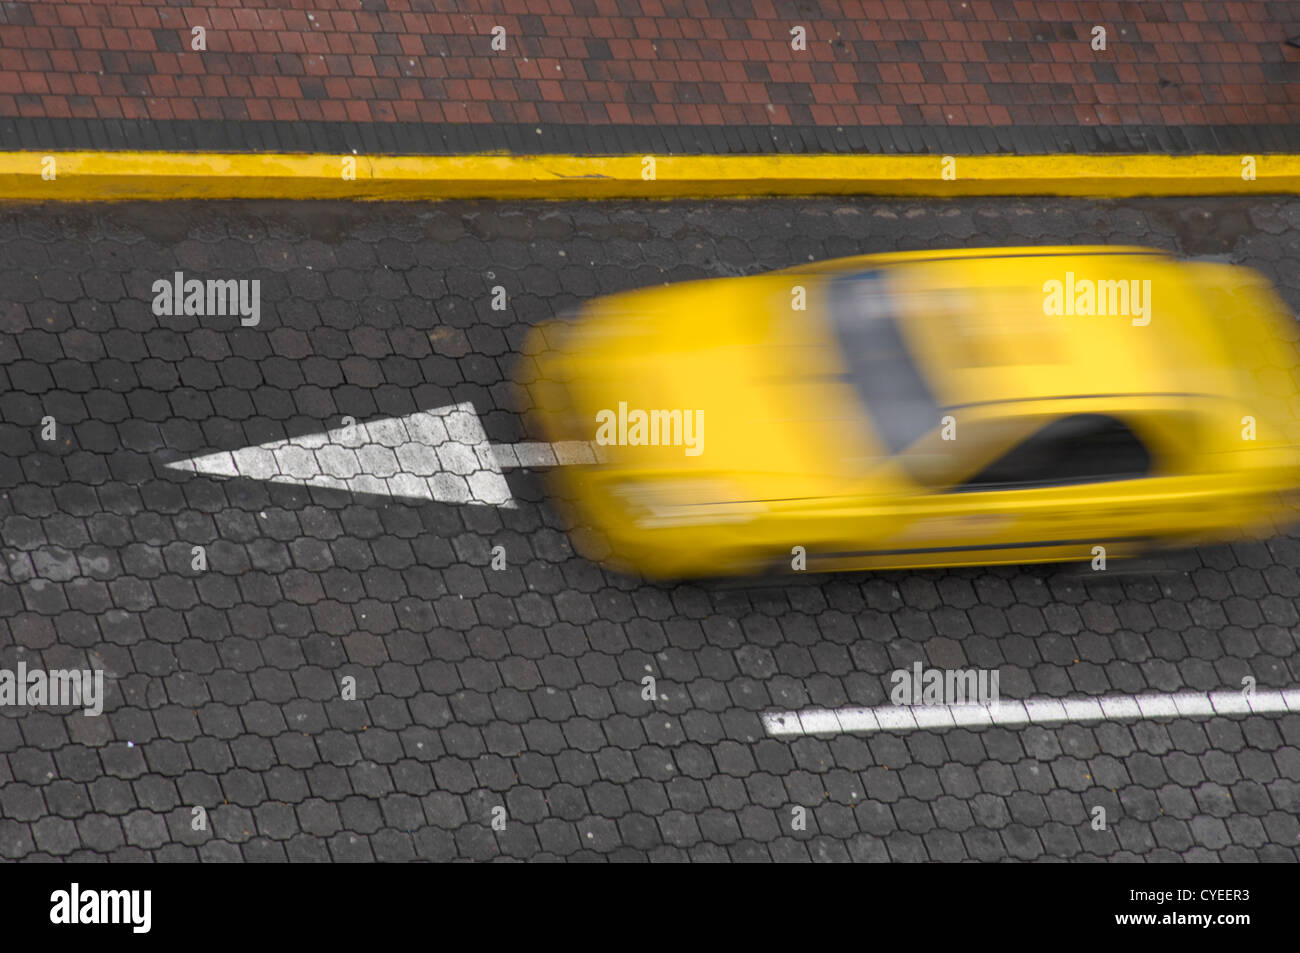 A High angle shot of a taxicab driving down a cobblestone street in Quito Ecuador - Stock Image